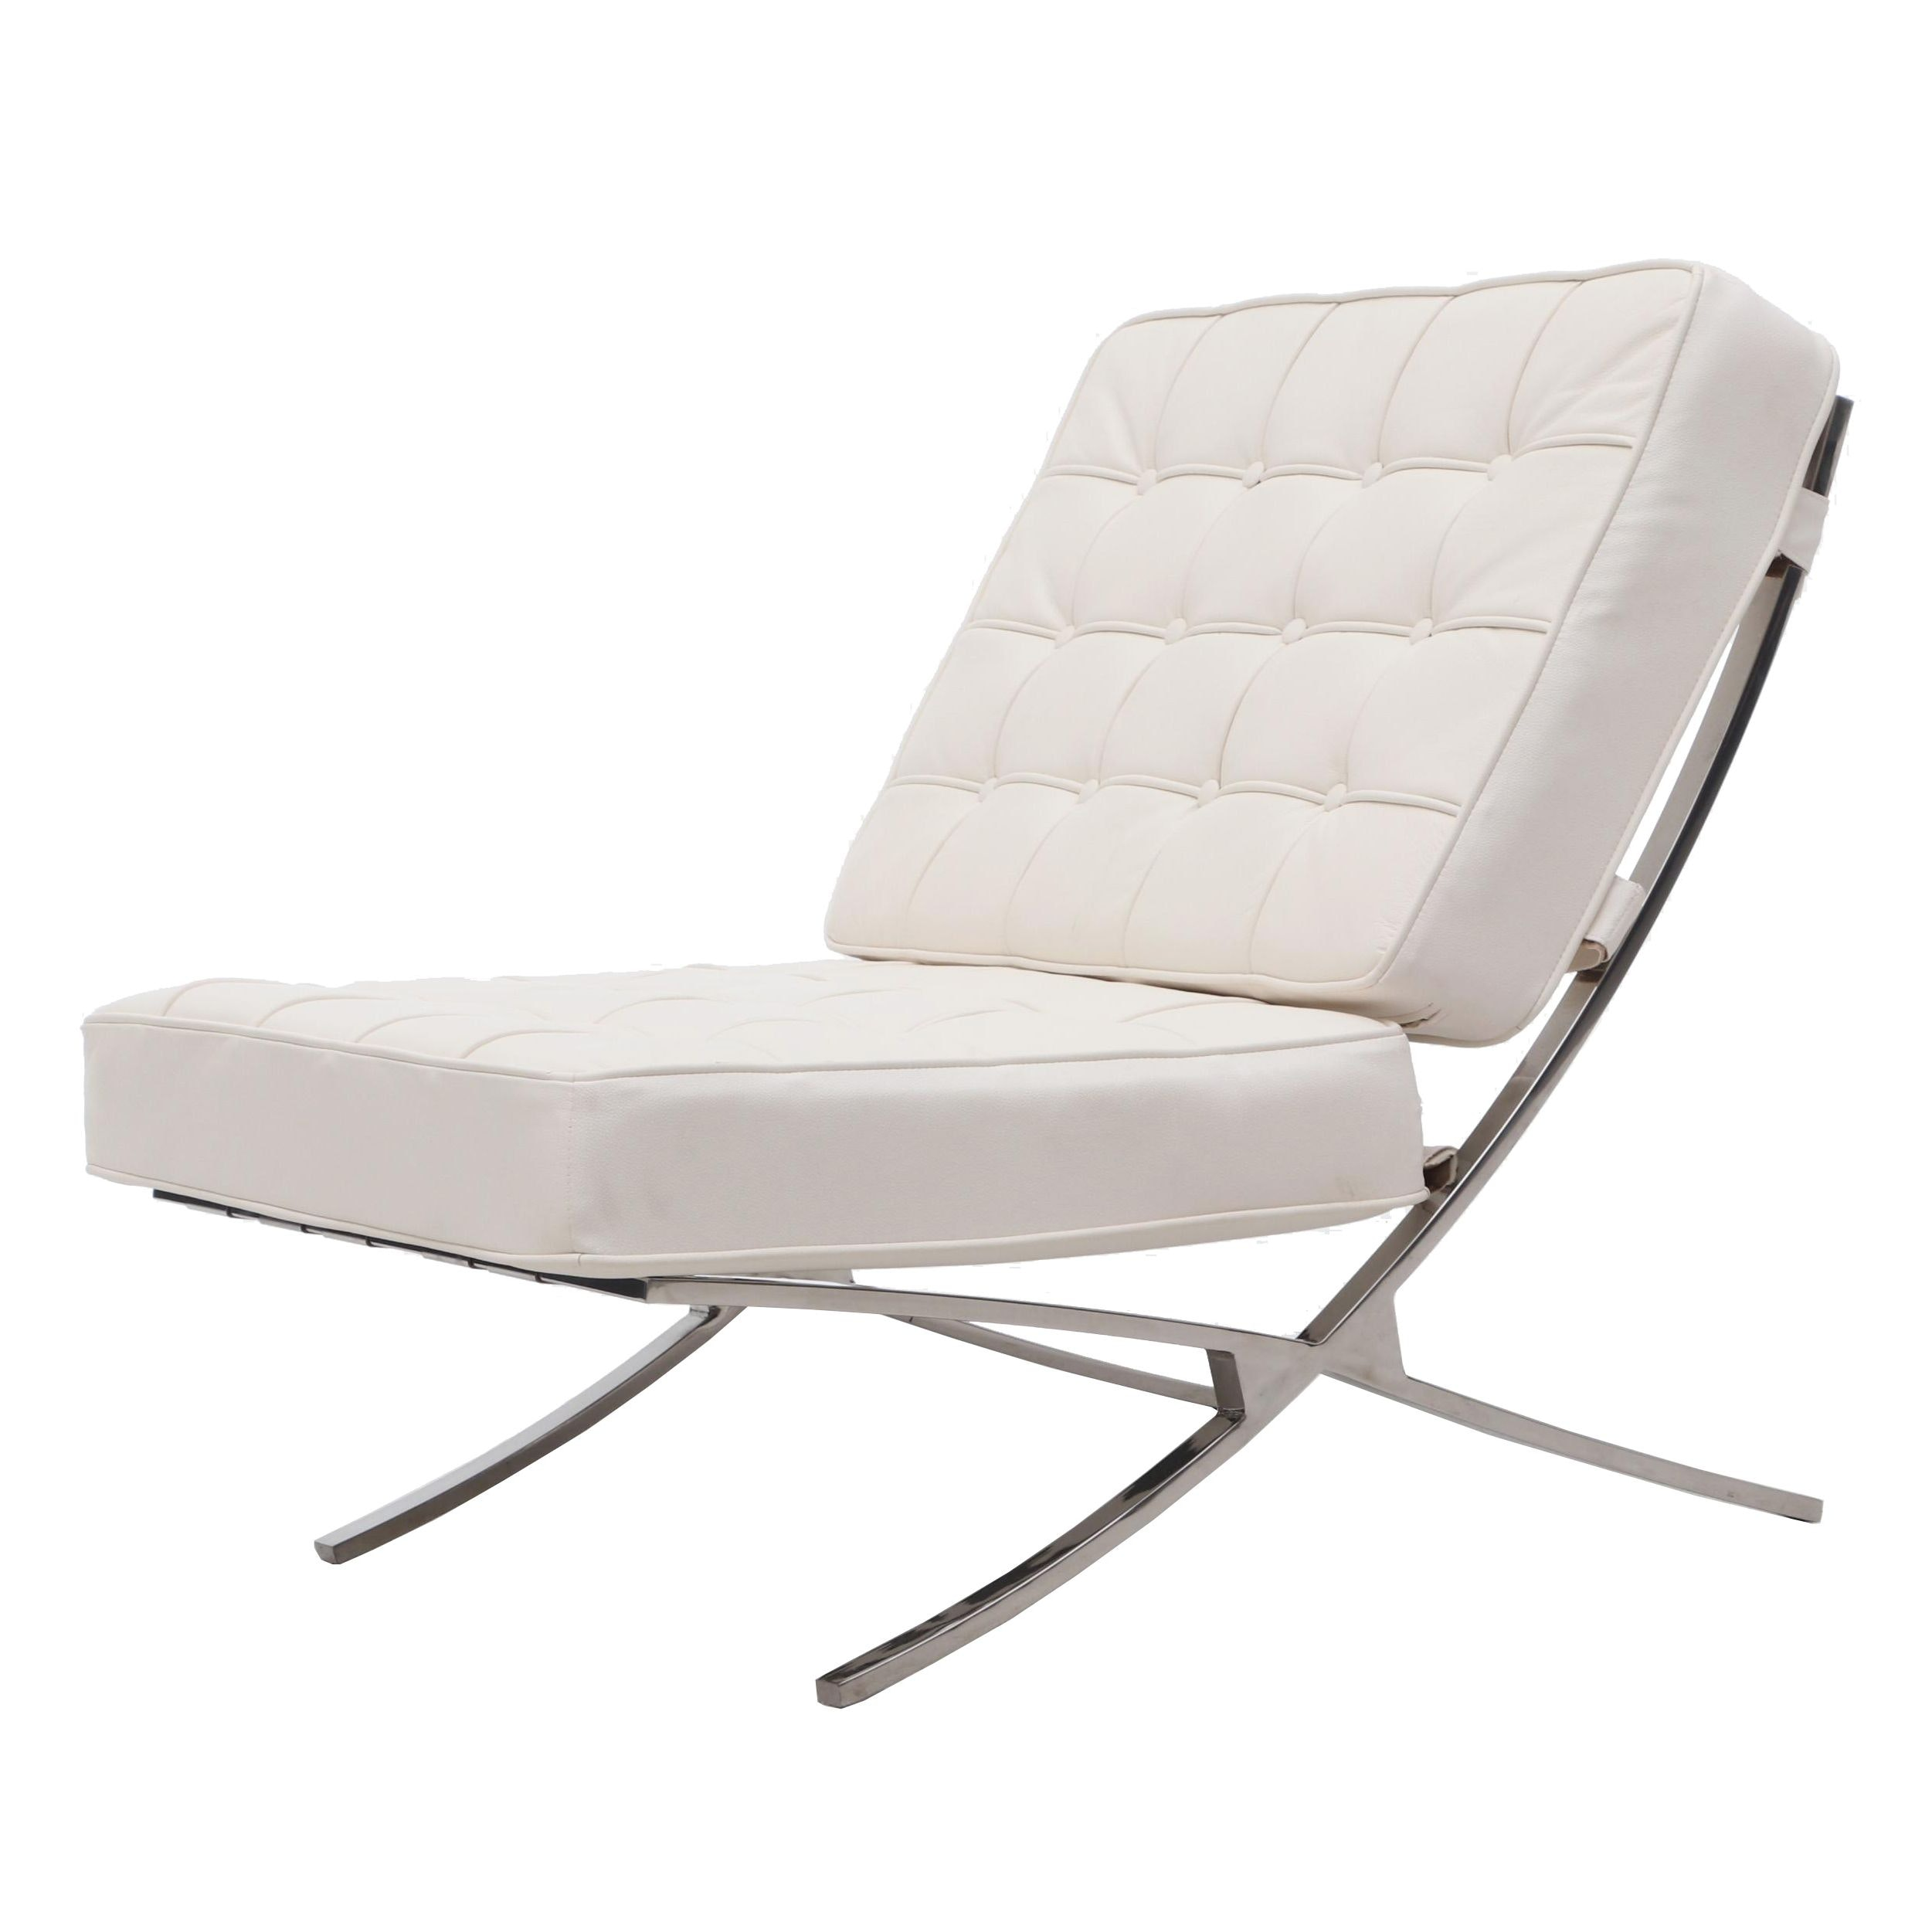 Contemporary Barcelona Lounger in White Leather